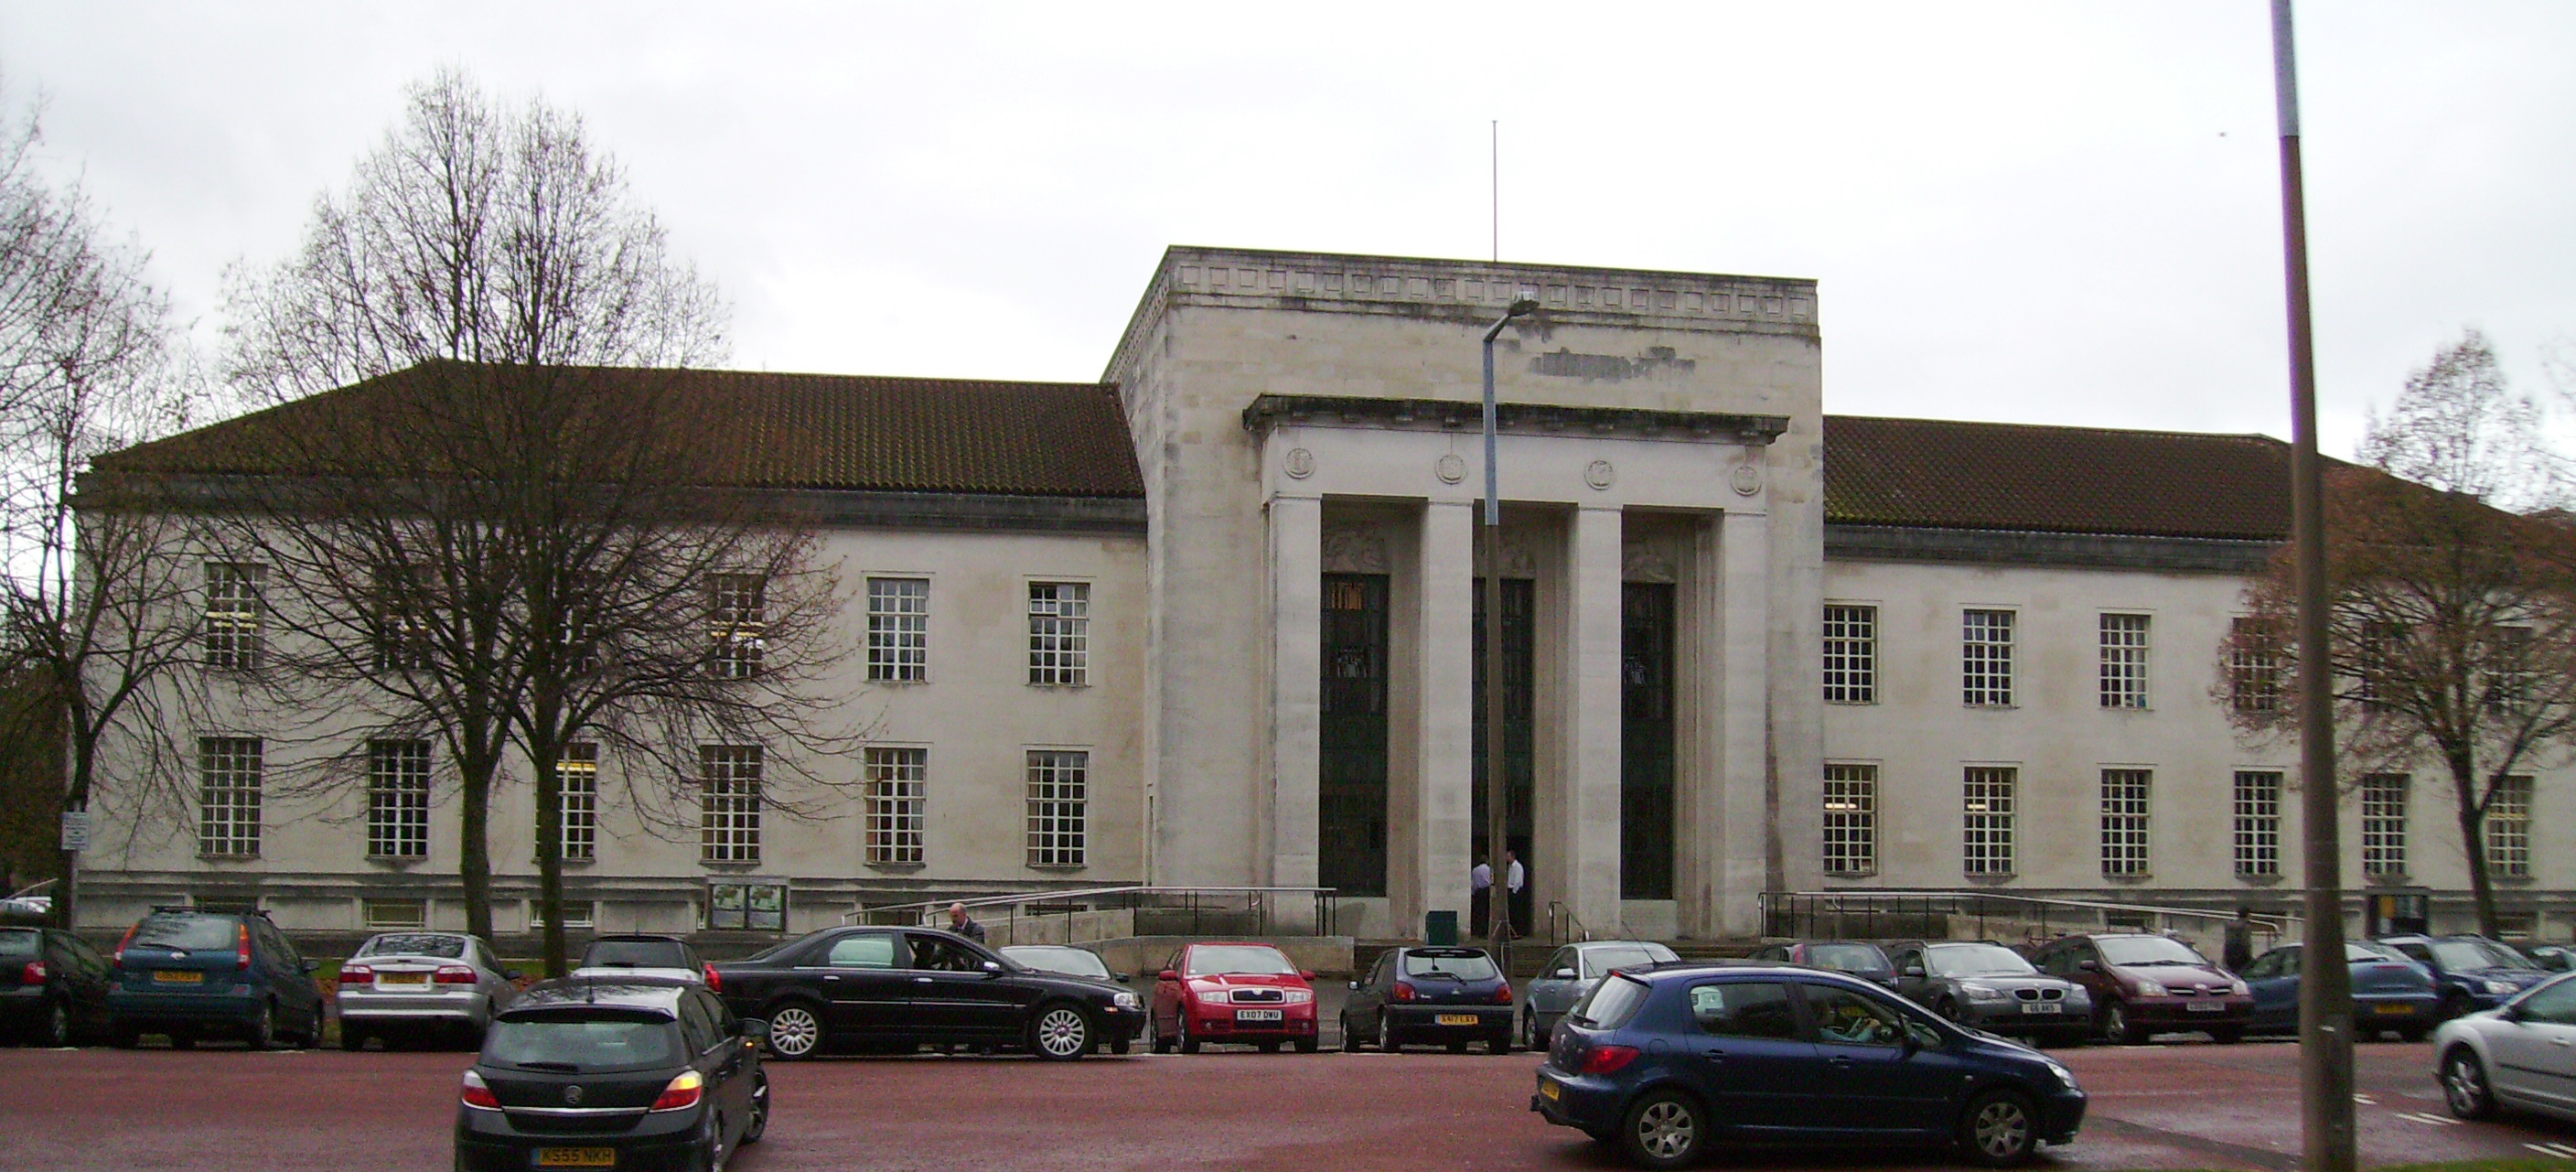 File:Temple of Peace, Cardiff.jpg - Wikipedia, the free encyclopedia